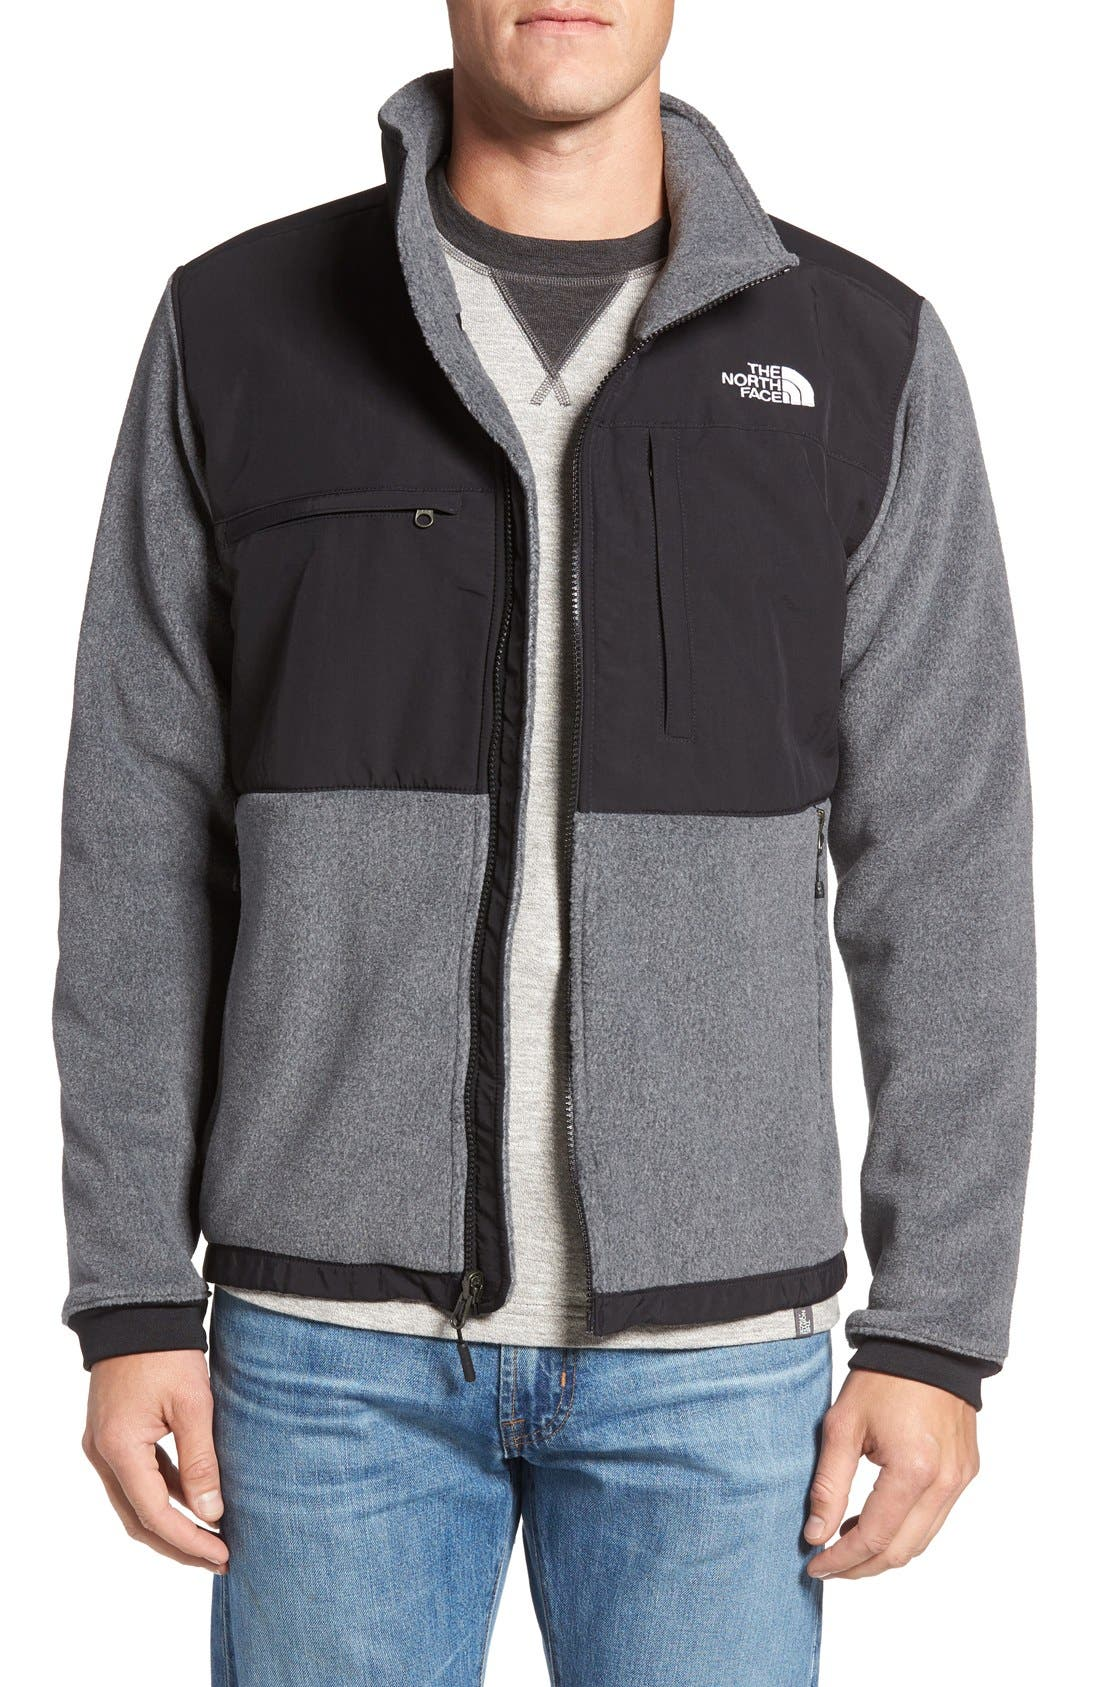 Denali 2 Recycled Fleece Jacket,                             Main thumbnail 1, color,                             Charcoal Grey Heather/ Black